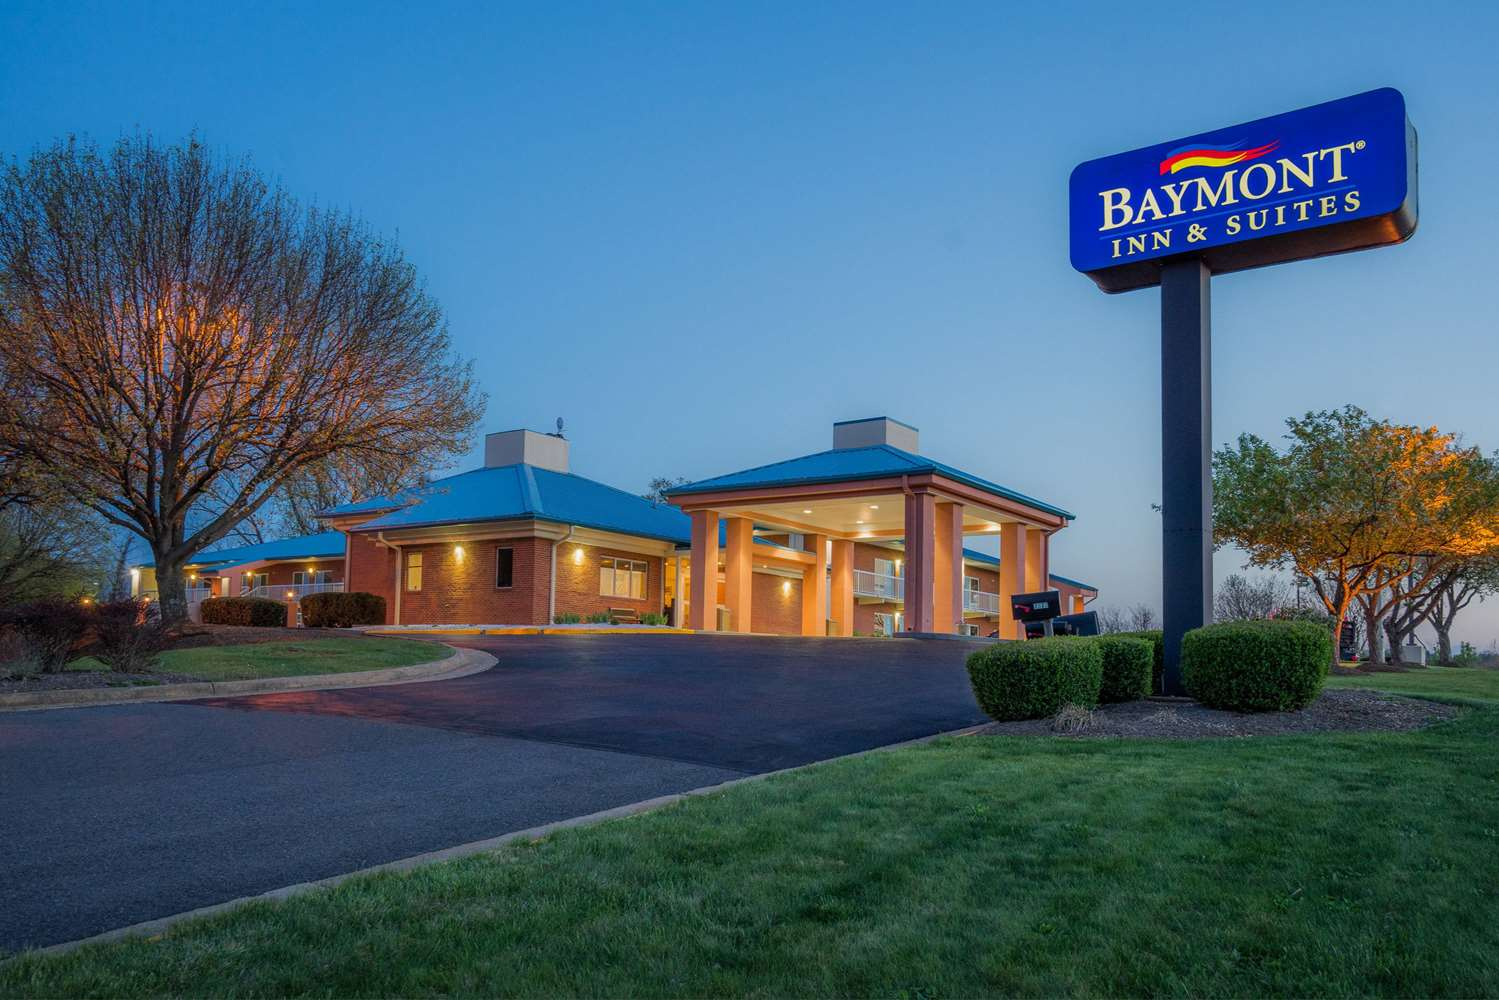 Nuevo Inn & Suites Warrenton